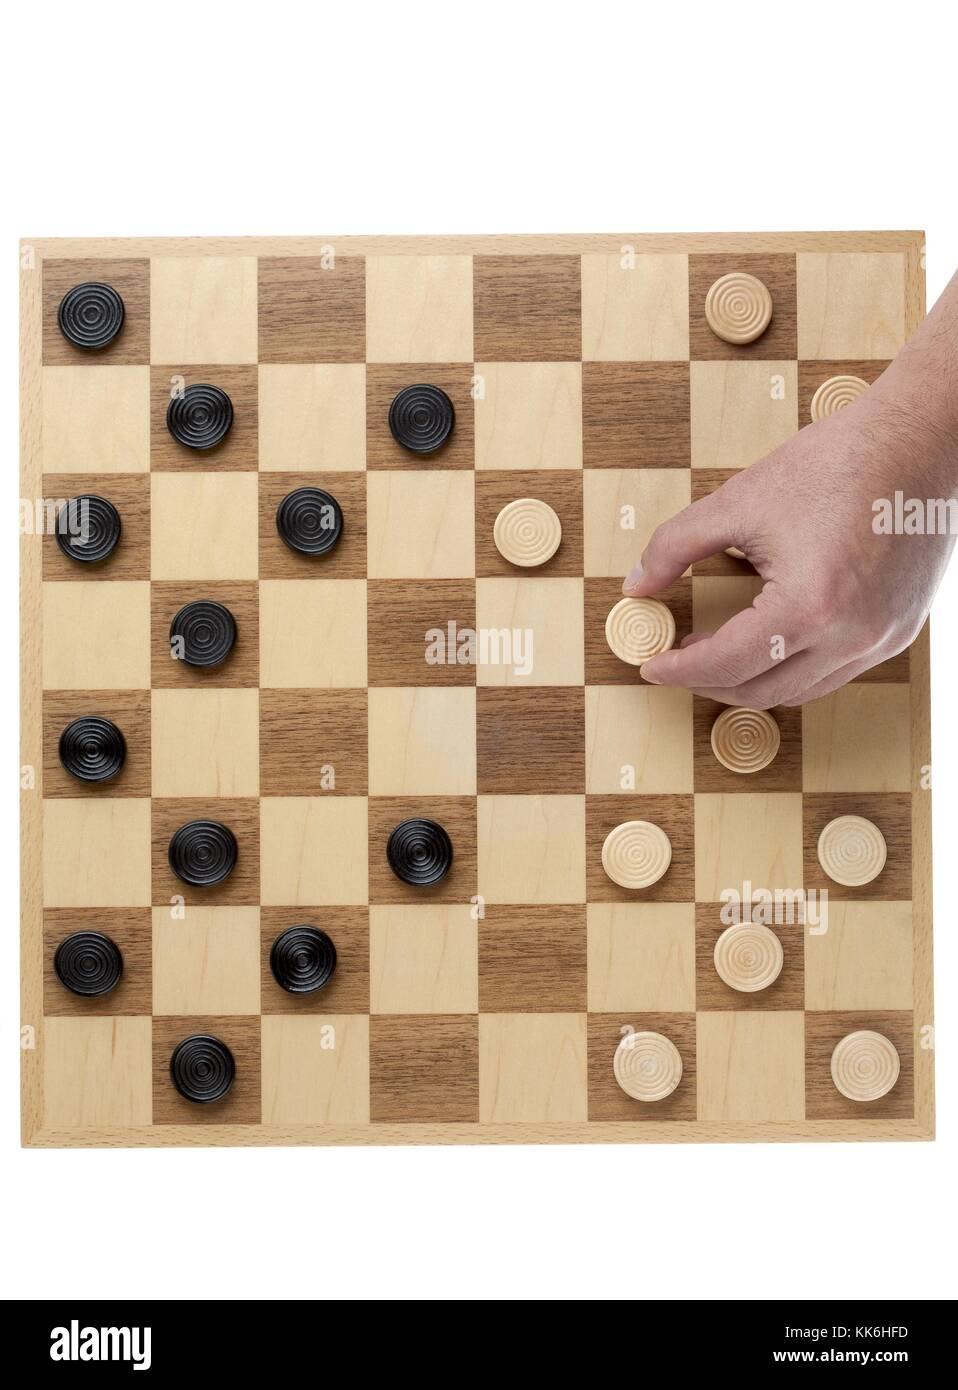 person playing checkers Stock Photo